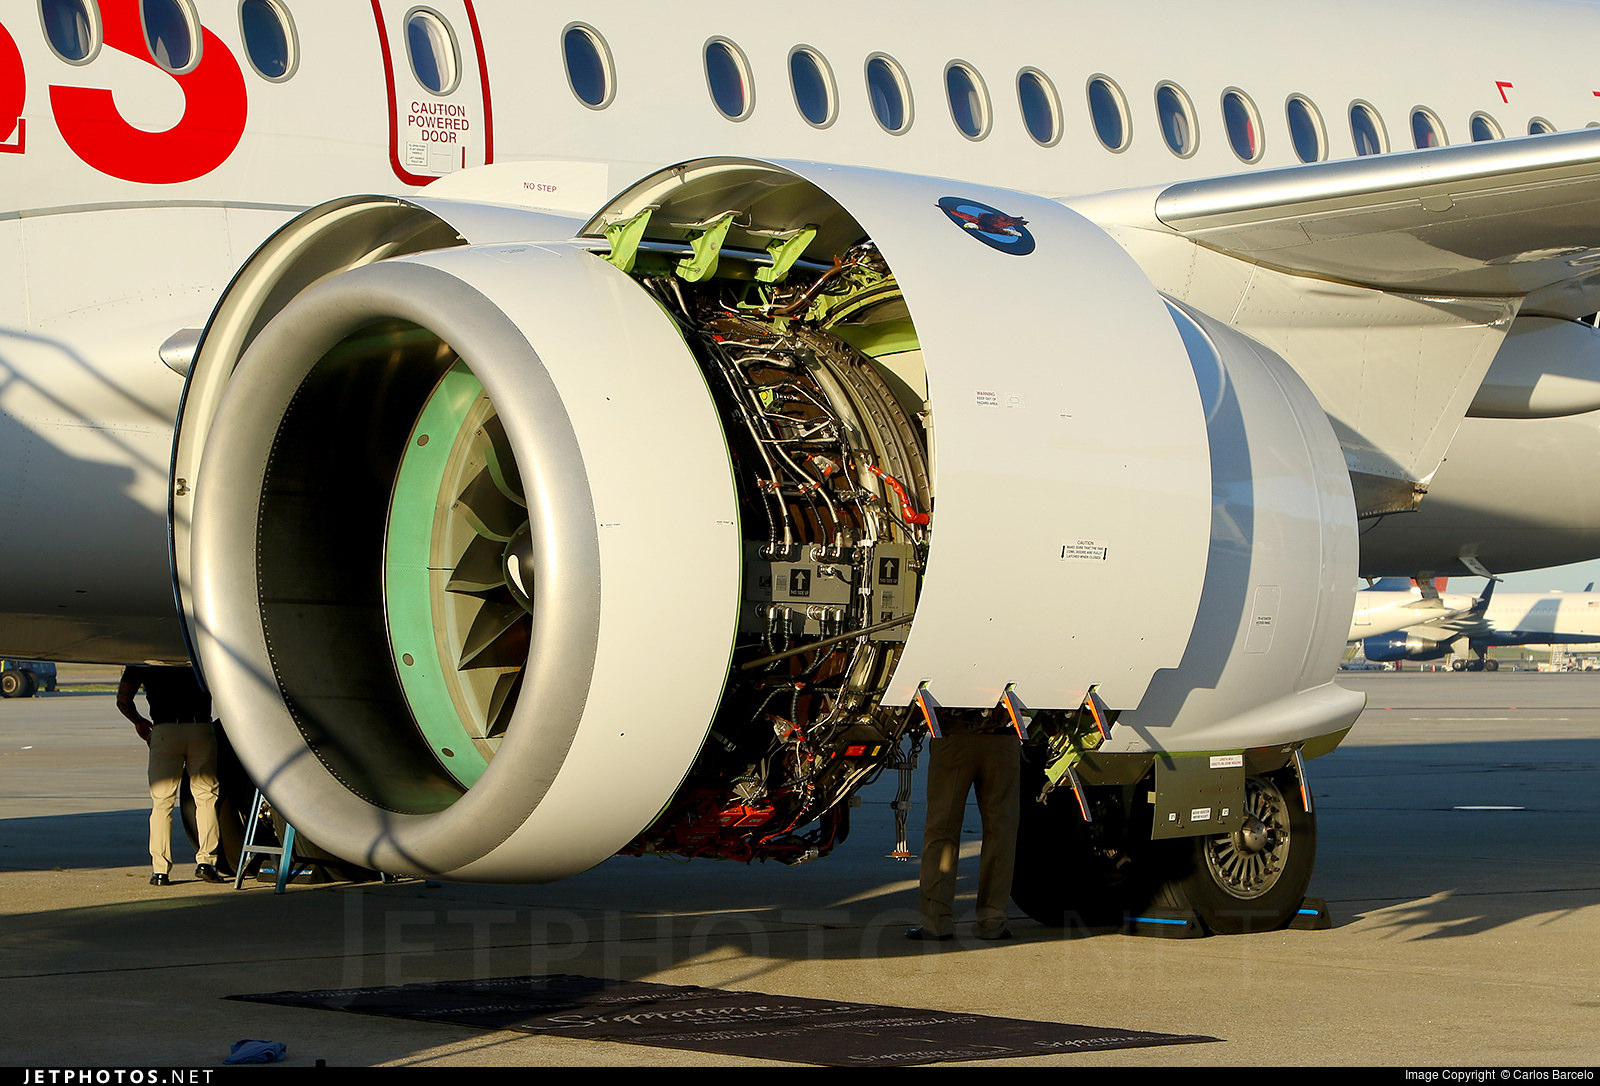 The Pratt and Whitney PW1500G engine